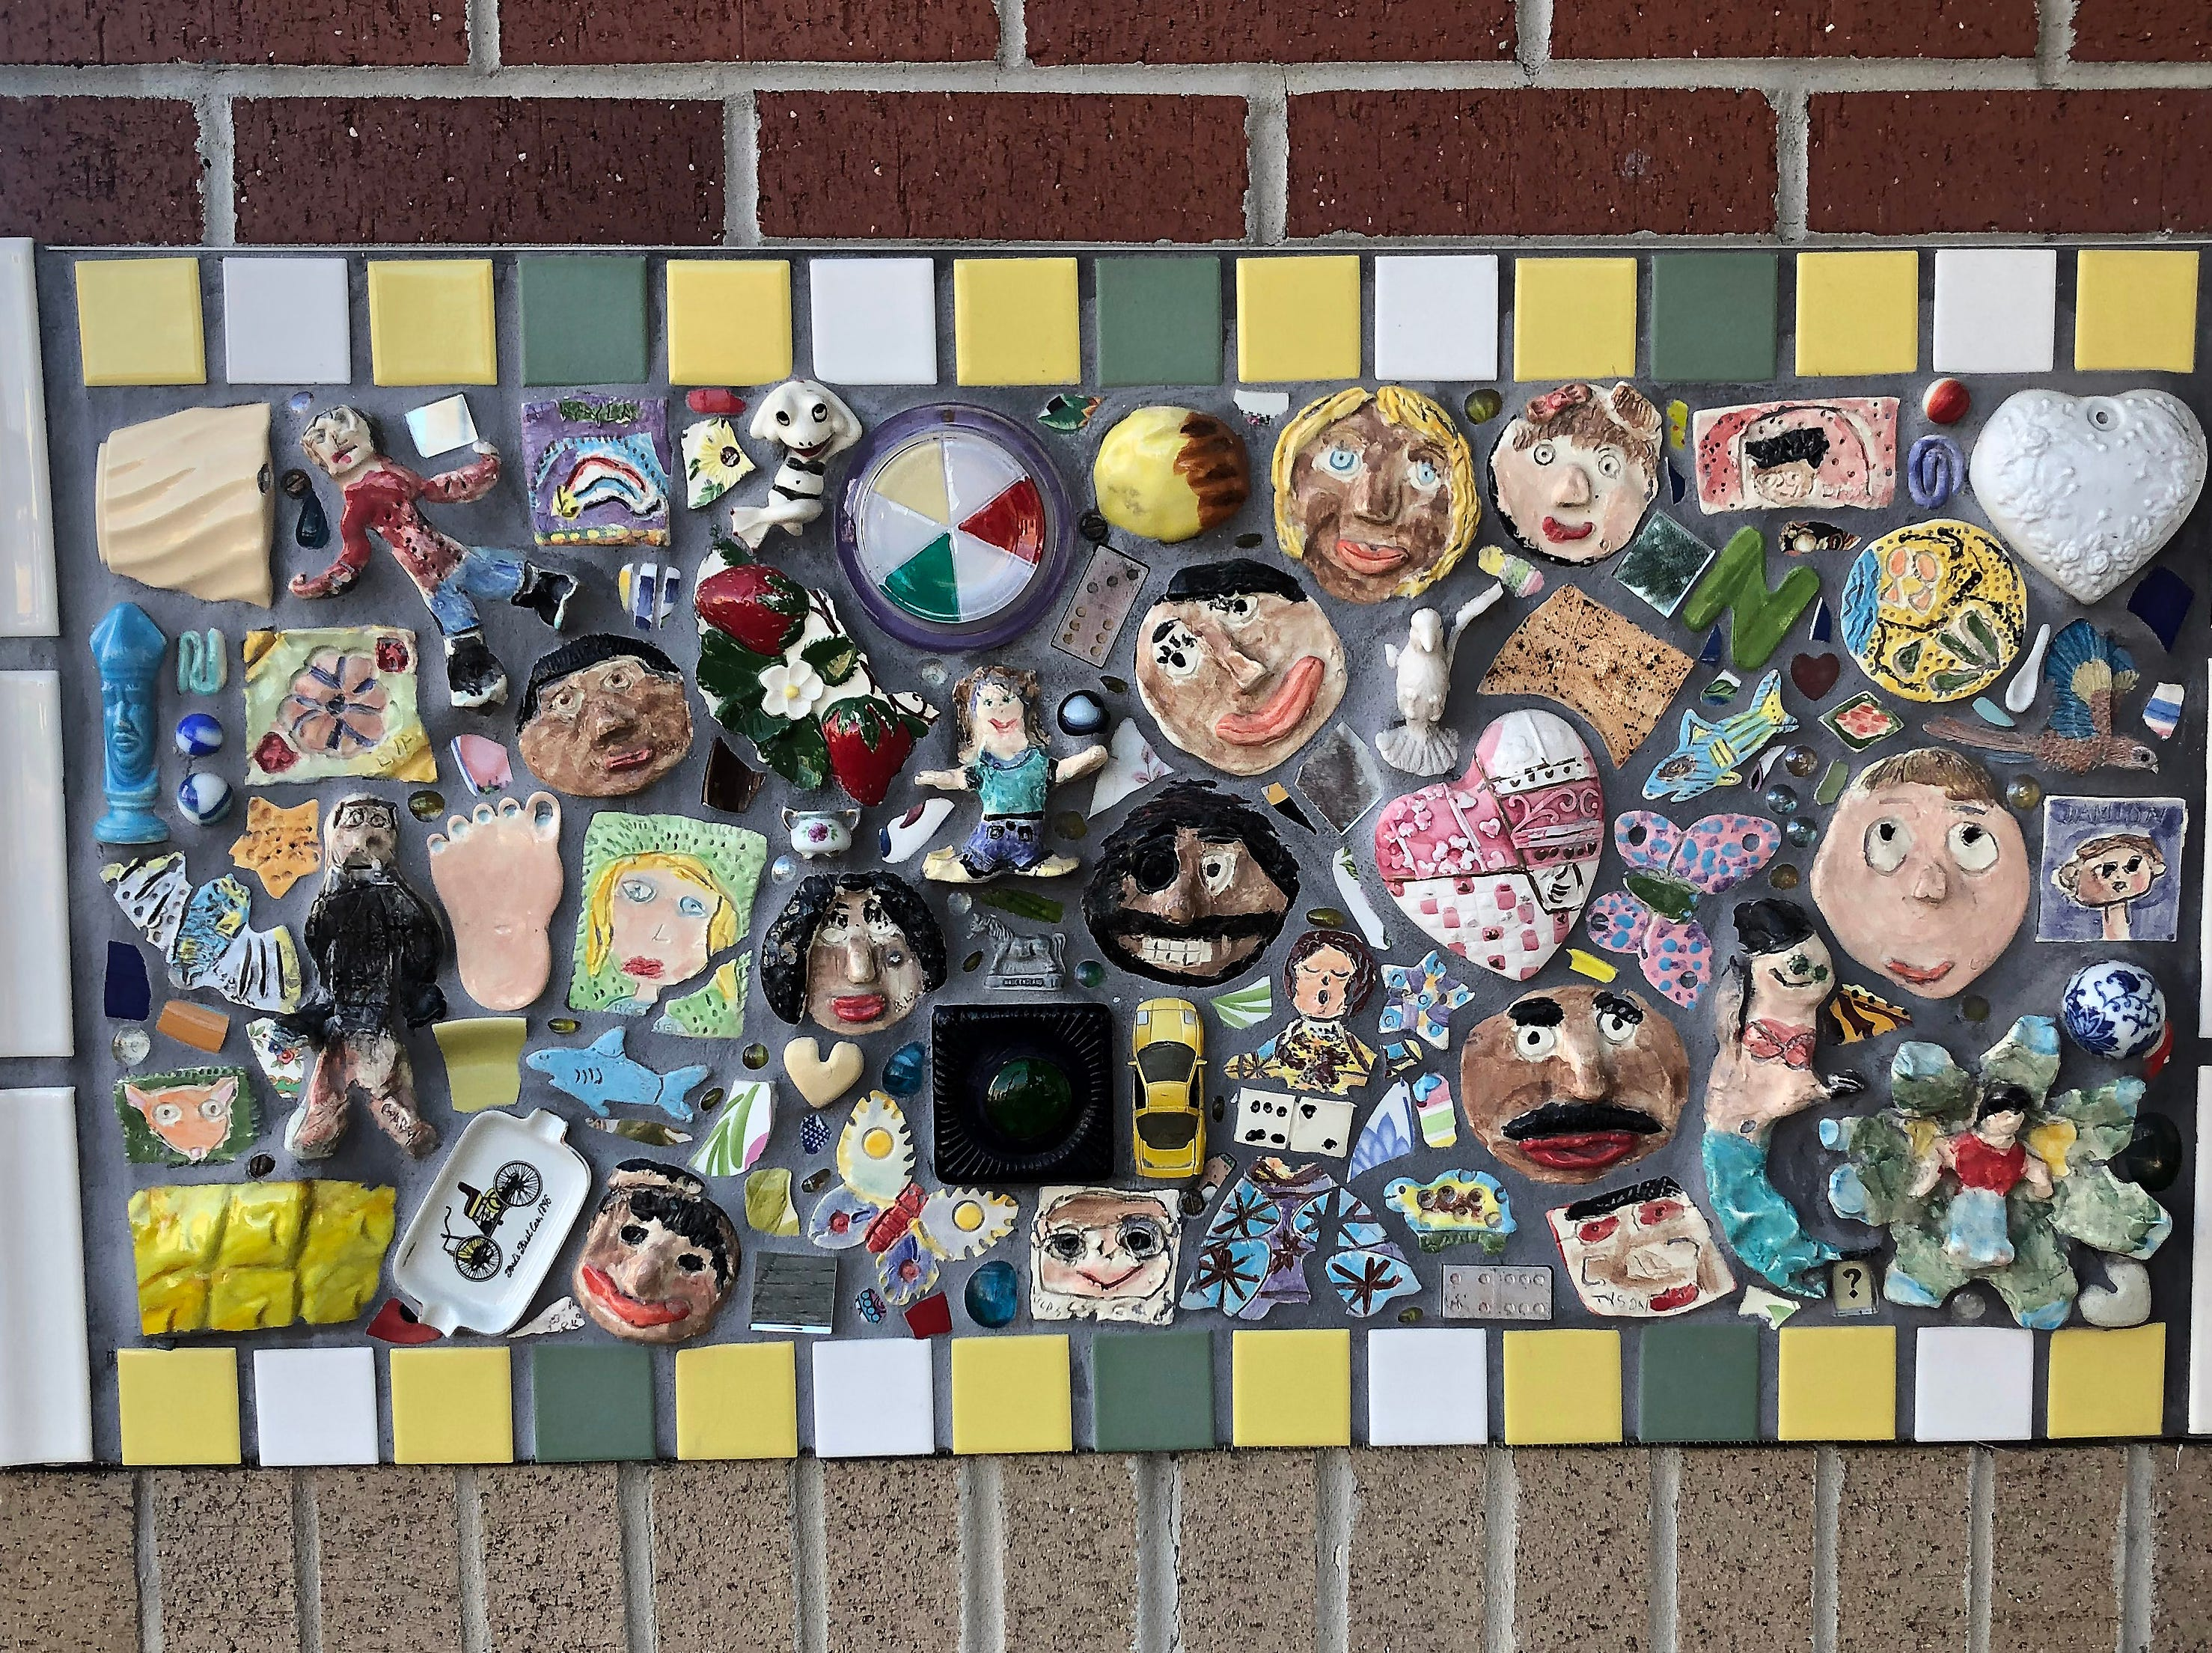 This column, decorated with artwork, is on the campus of Battle Academy, a magnet school for grades K-5 in the heart of the Southside of downtown Chattanooga.